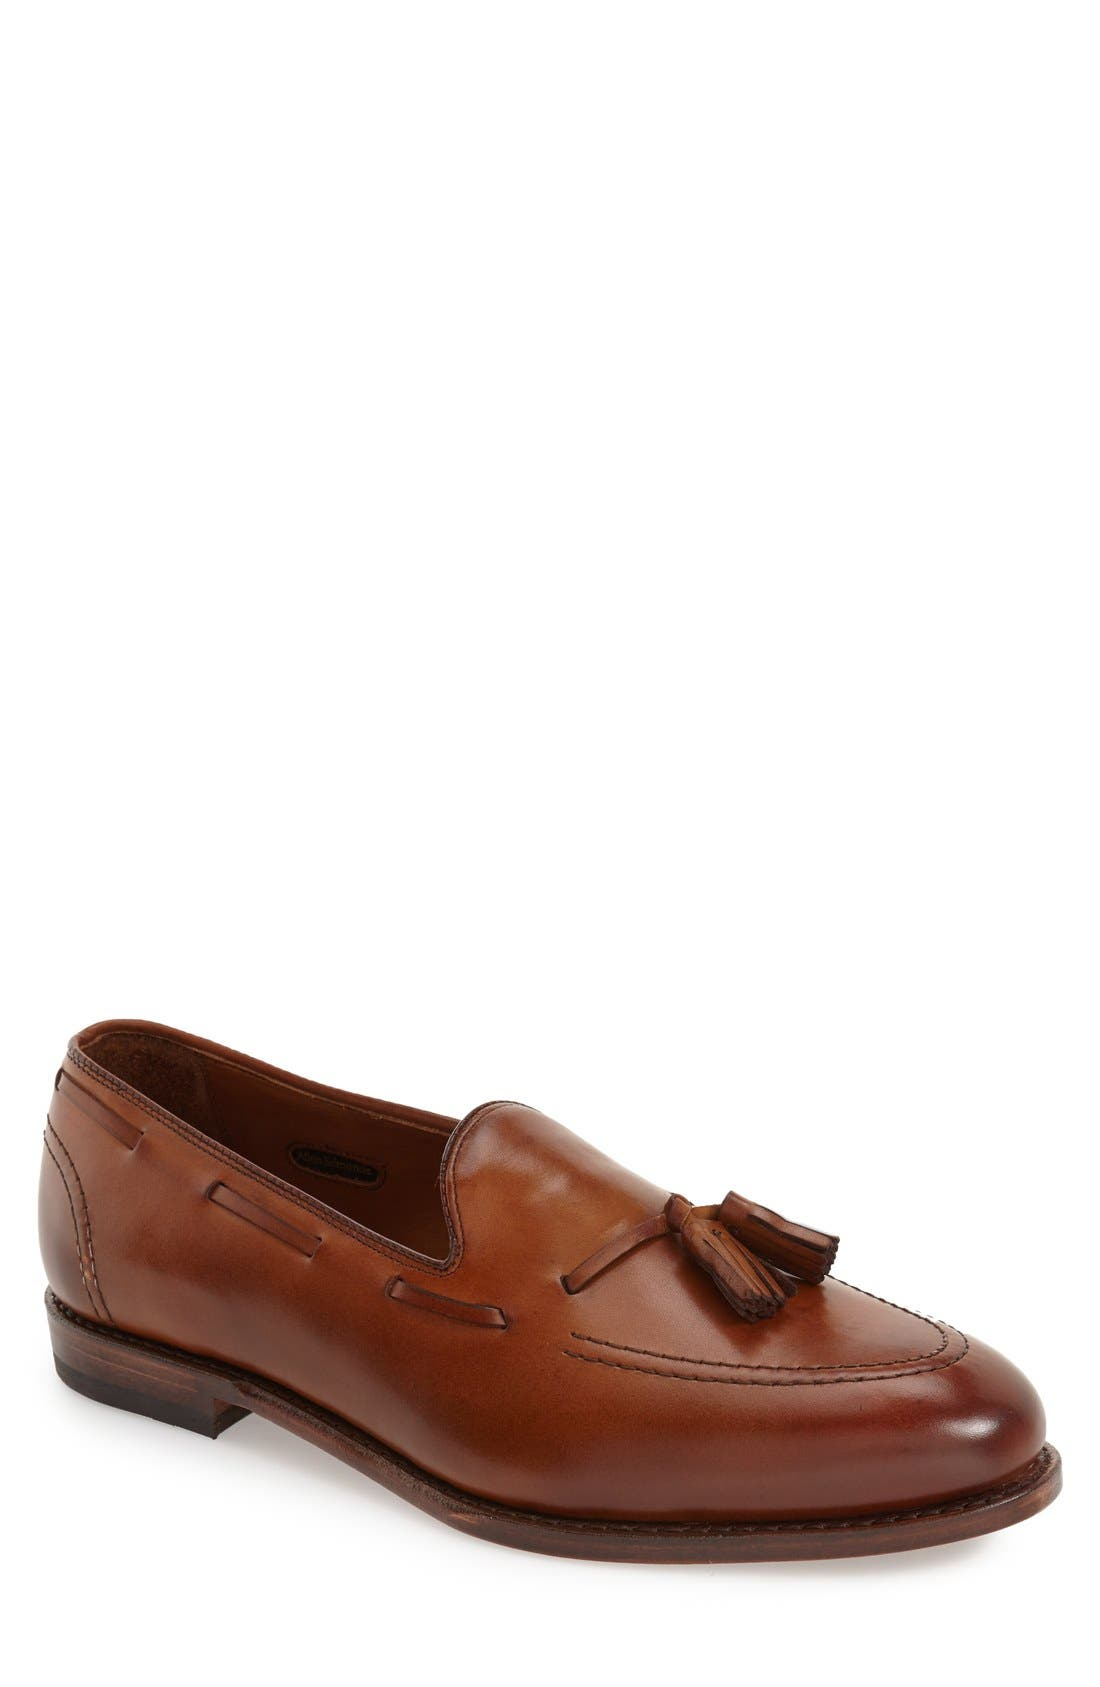 Allen Edmonds 'Acheson' Tassel Loafer (Men)